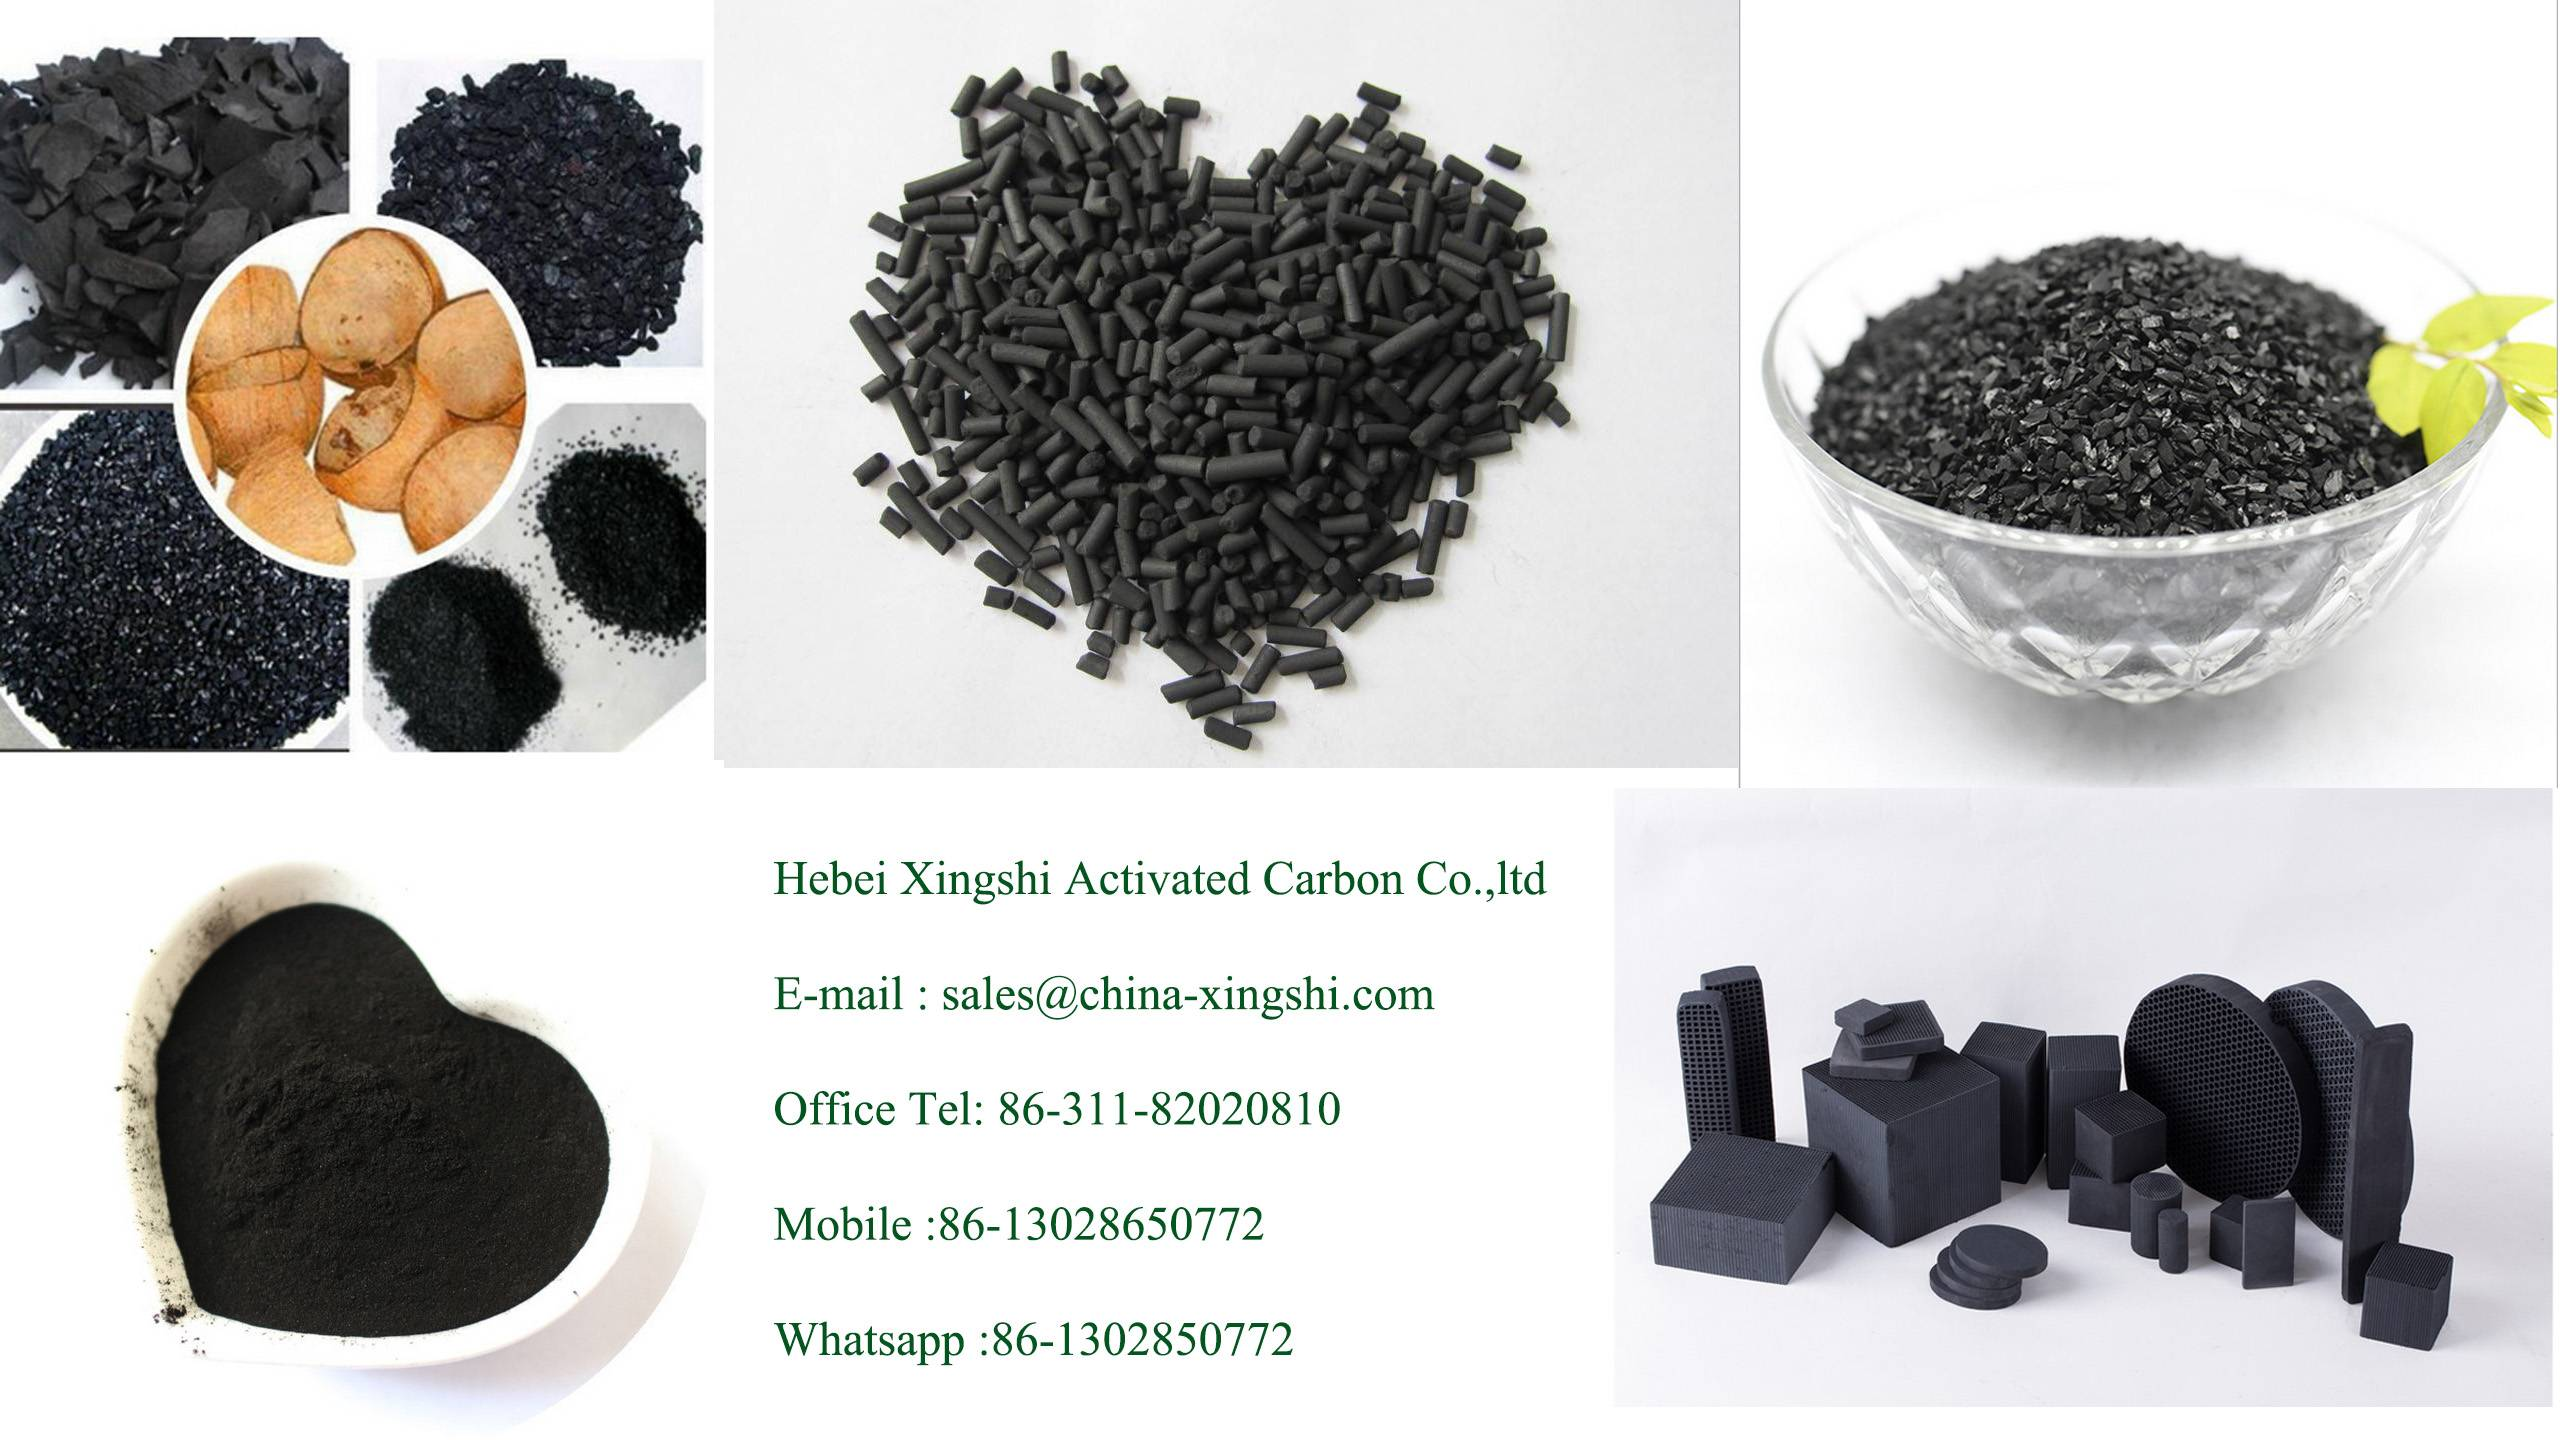 How long is the saturation period of activated carbon?